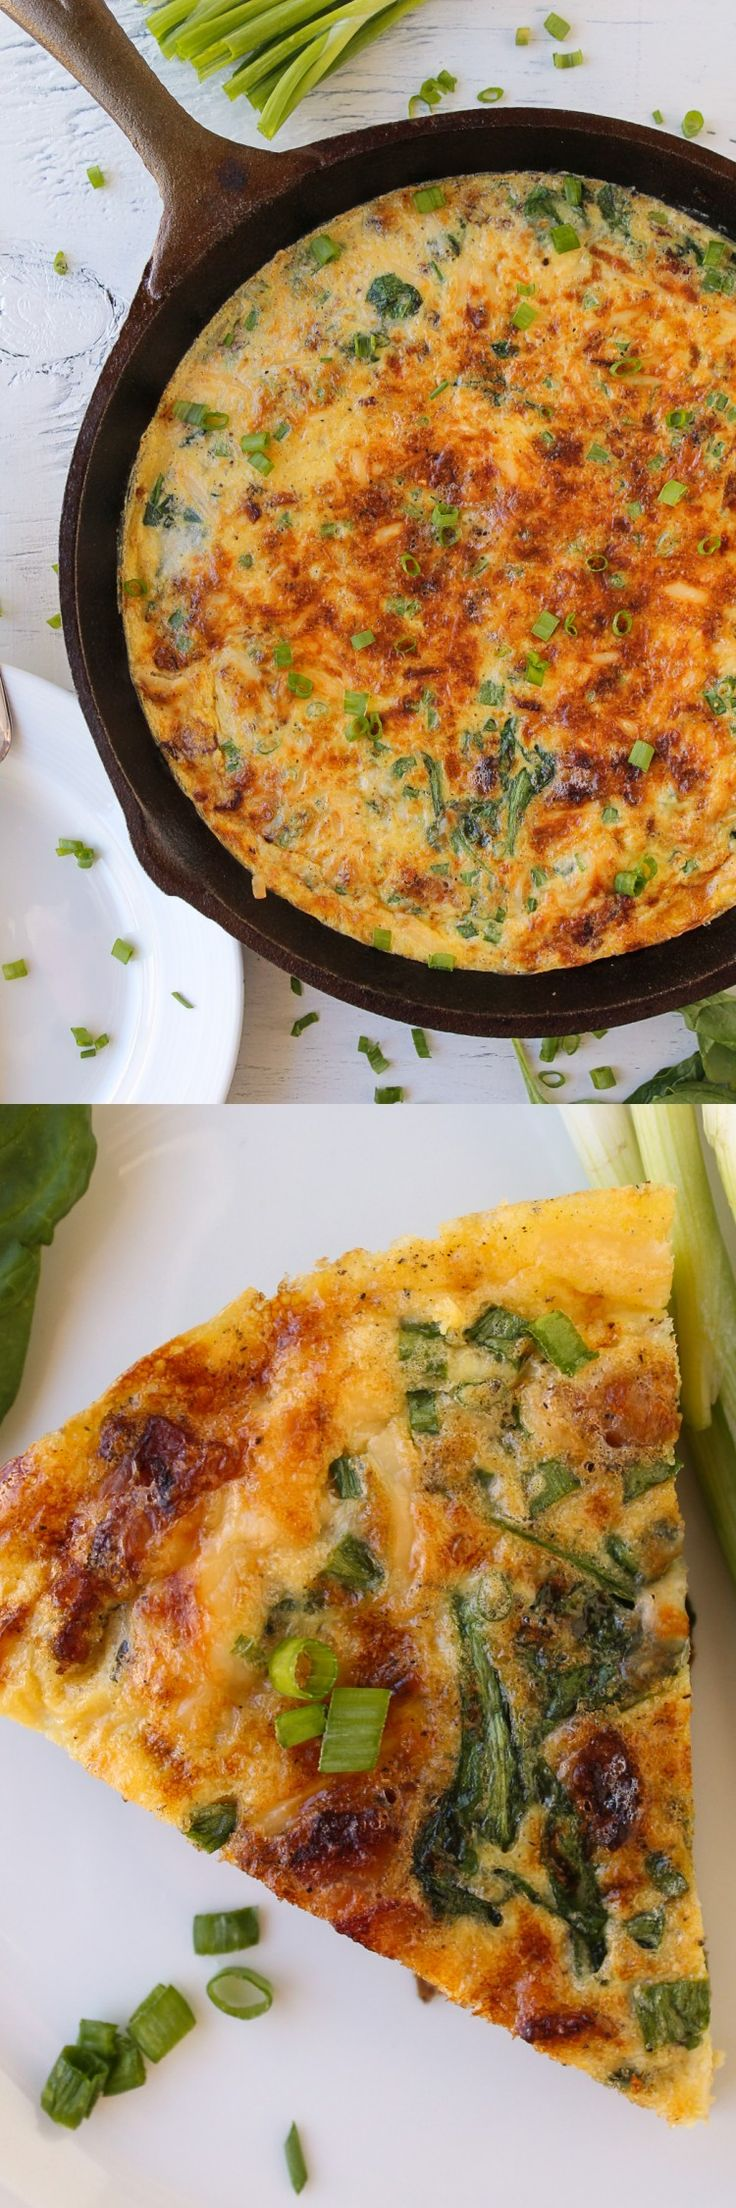 Bacon, Gouda, and Spinach Frittata from The Food Charlatan